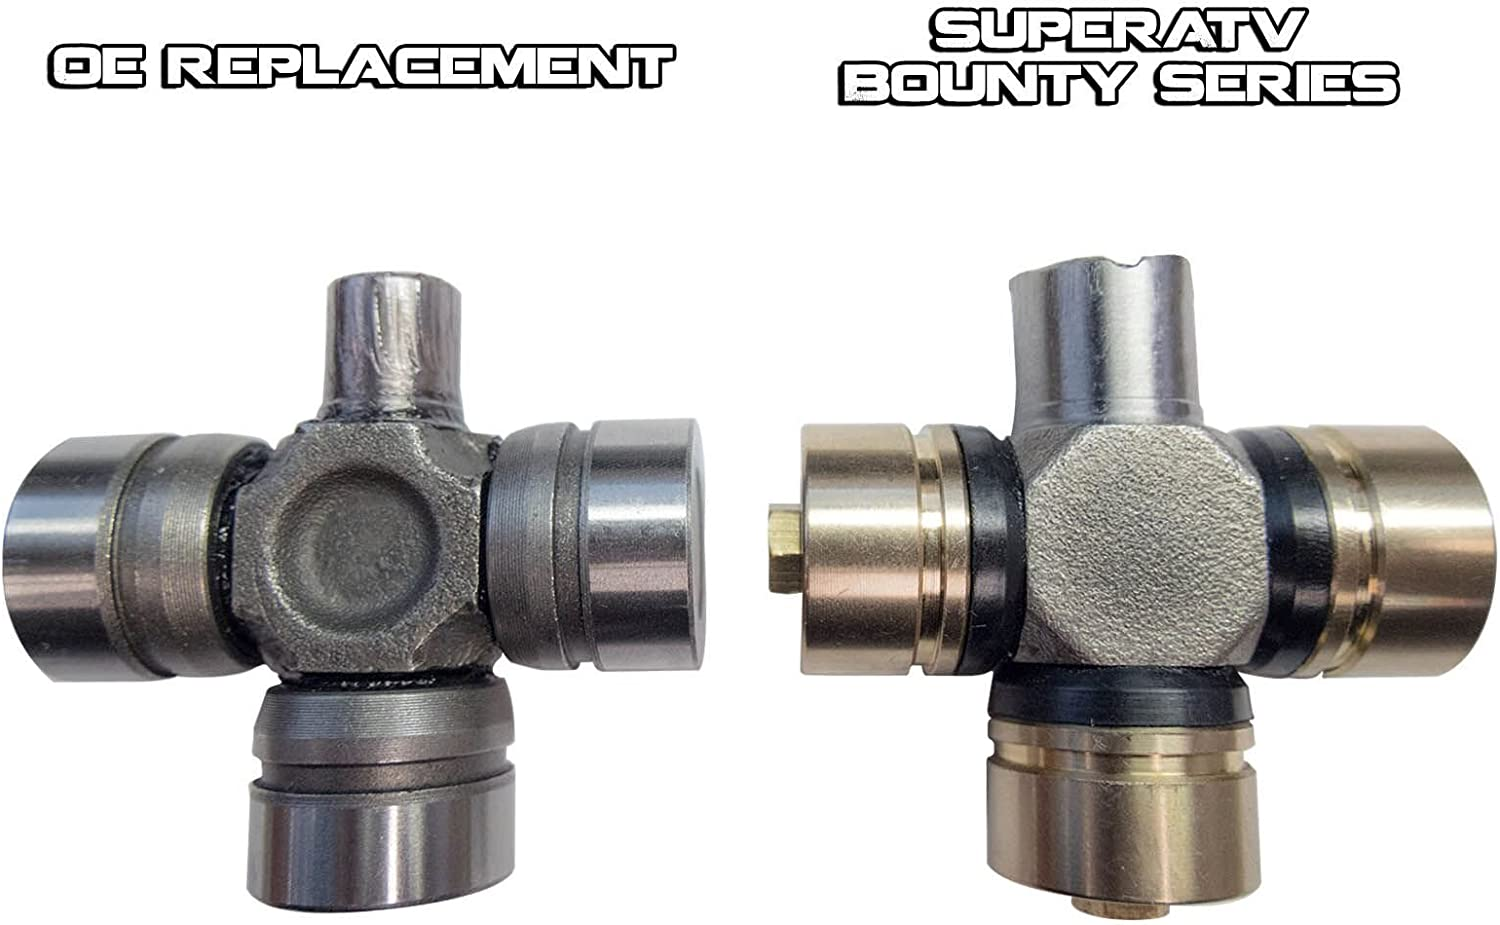 Ace//Sportsman SuperATV Heavy Duty U Joint//Spider Joint Prop Shaft Replacement//Upgrade for Polaris RZR 800 900 1000 Turbo//Ranger 570 800 900 1000 See Fitment